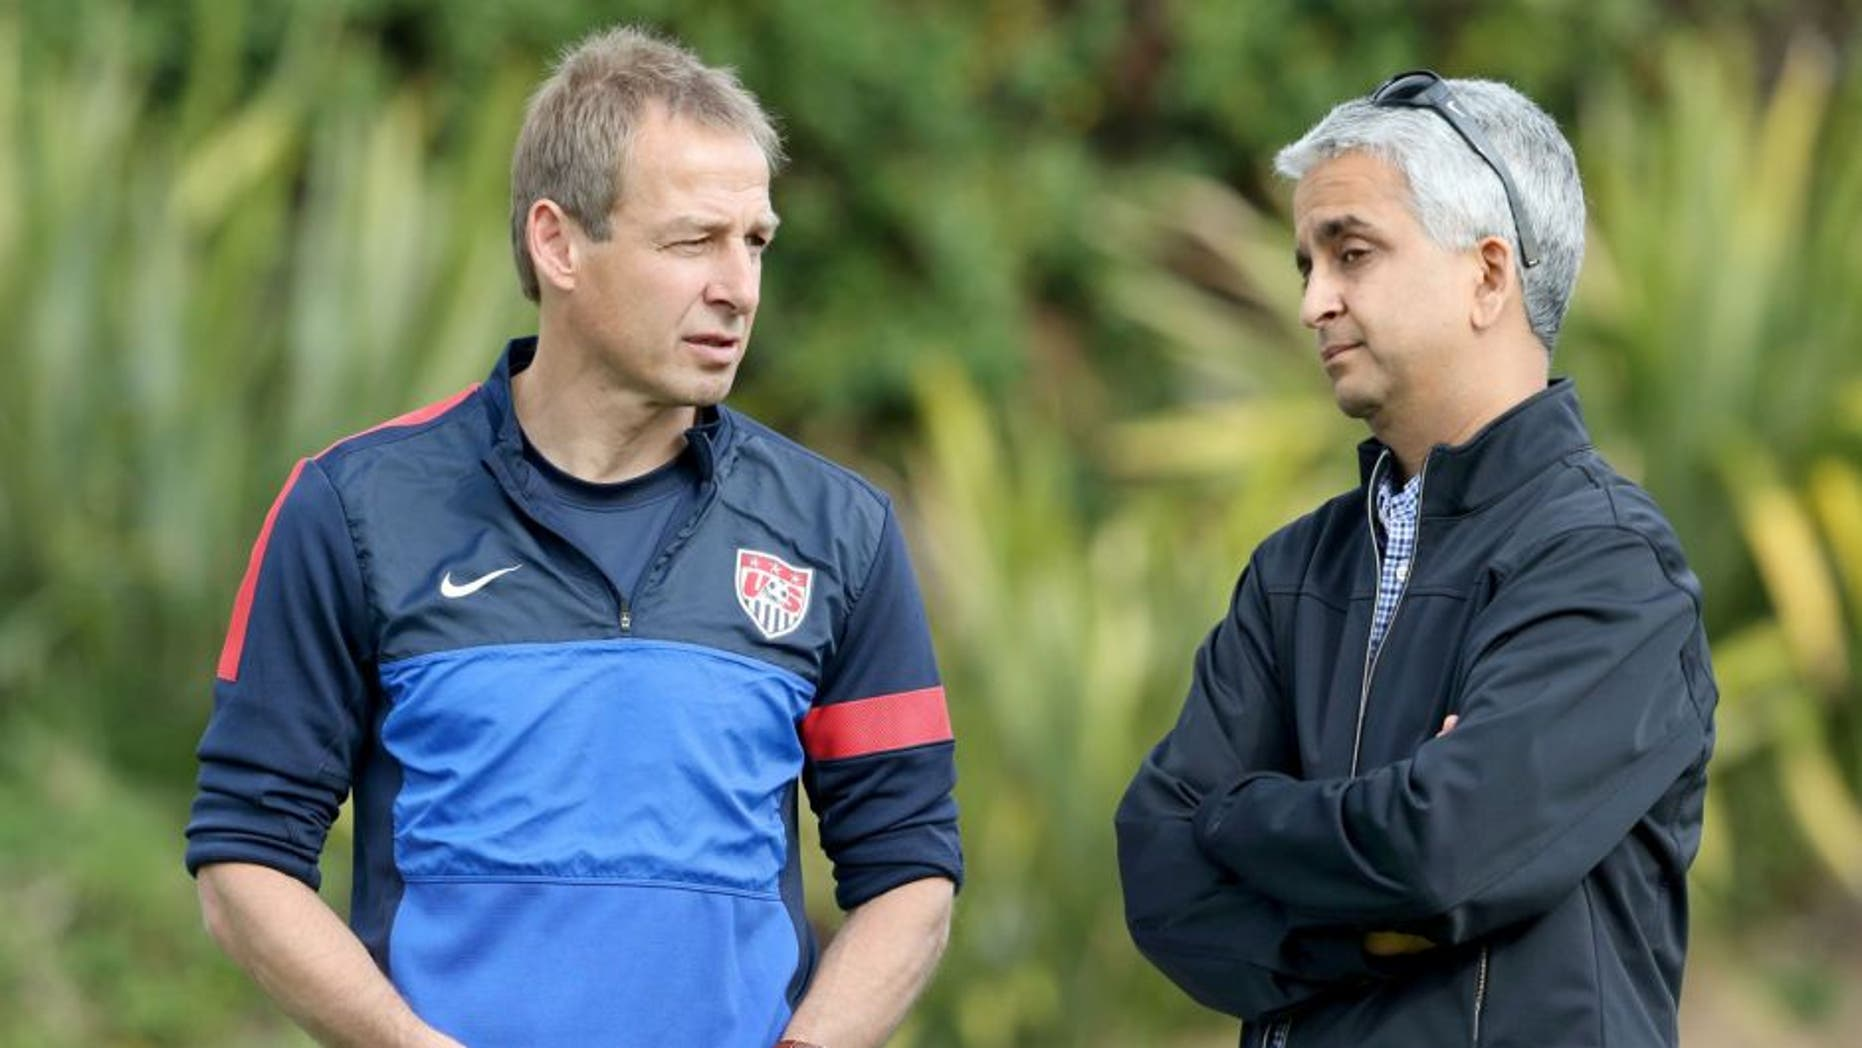 LOS ANGELES, CA - JANUARY 07: Head Coach Juergen Klinsmann of the U.S. Men's National Soccer team (L) and United States Soccer Federation President Sunil Gulati attend training at StubHub Center on January 7, 2014 in Los Angeles, California. (Photo by Victor Decolongon/Getty Images) *** Local Caption *** Juergen Klinsmann; Sunil Gulati